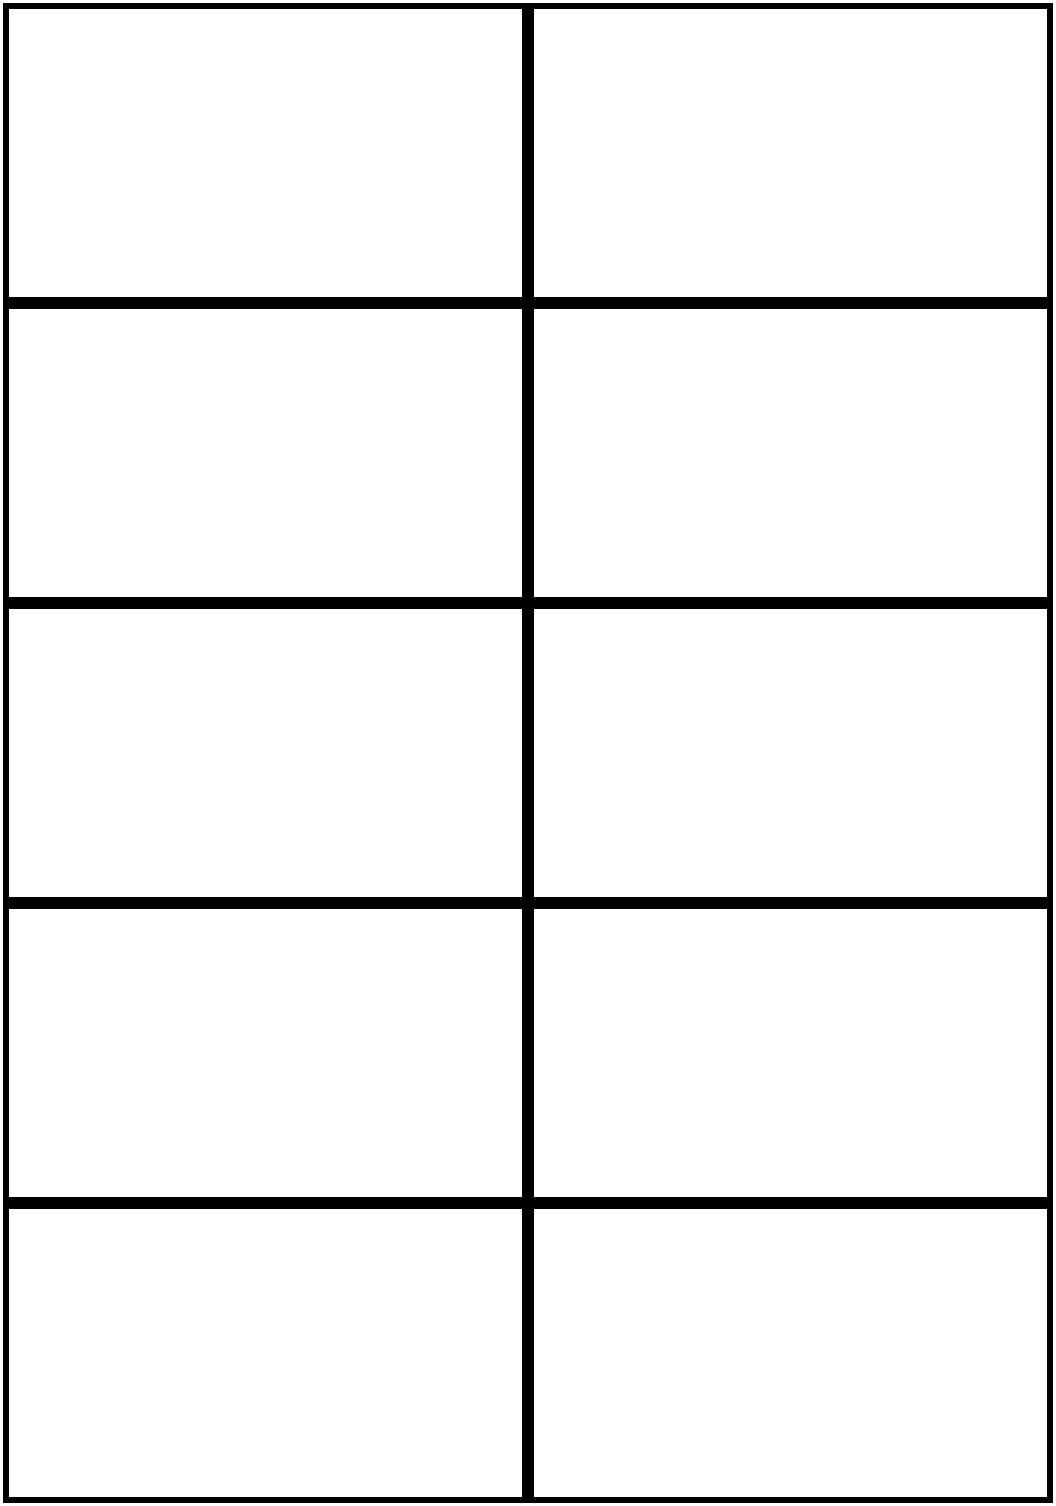 Image Result For Flashcards Template Word   Free Printable Intended For Free Printable Blank Flash Cards Template